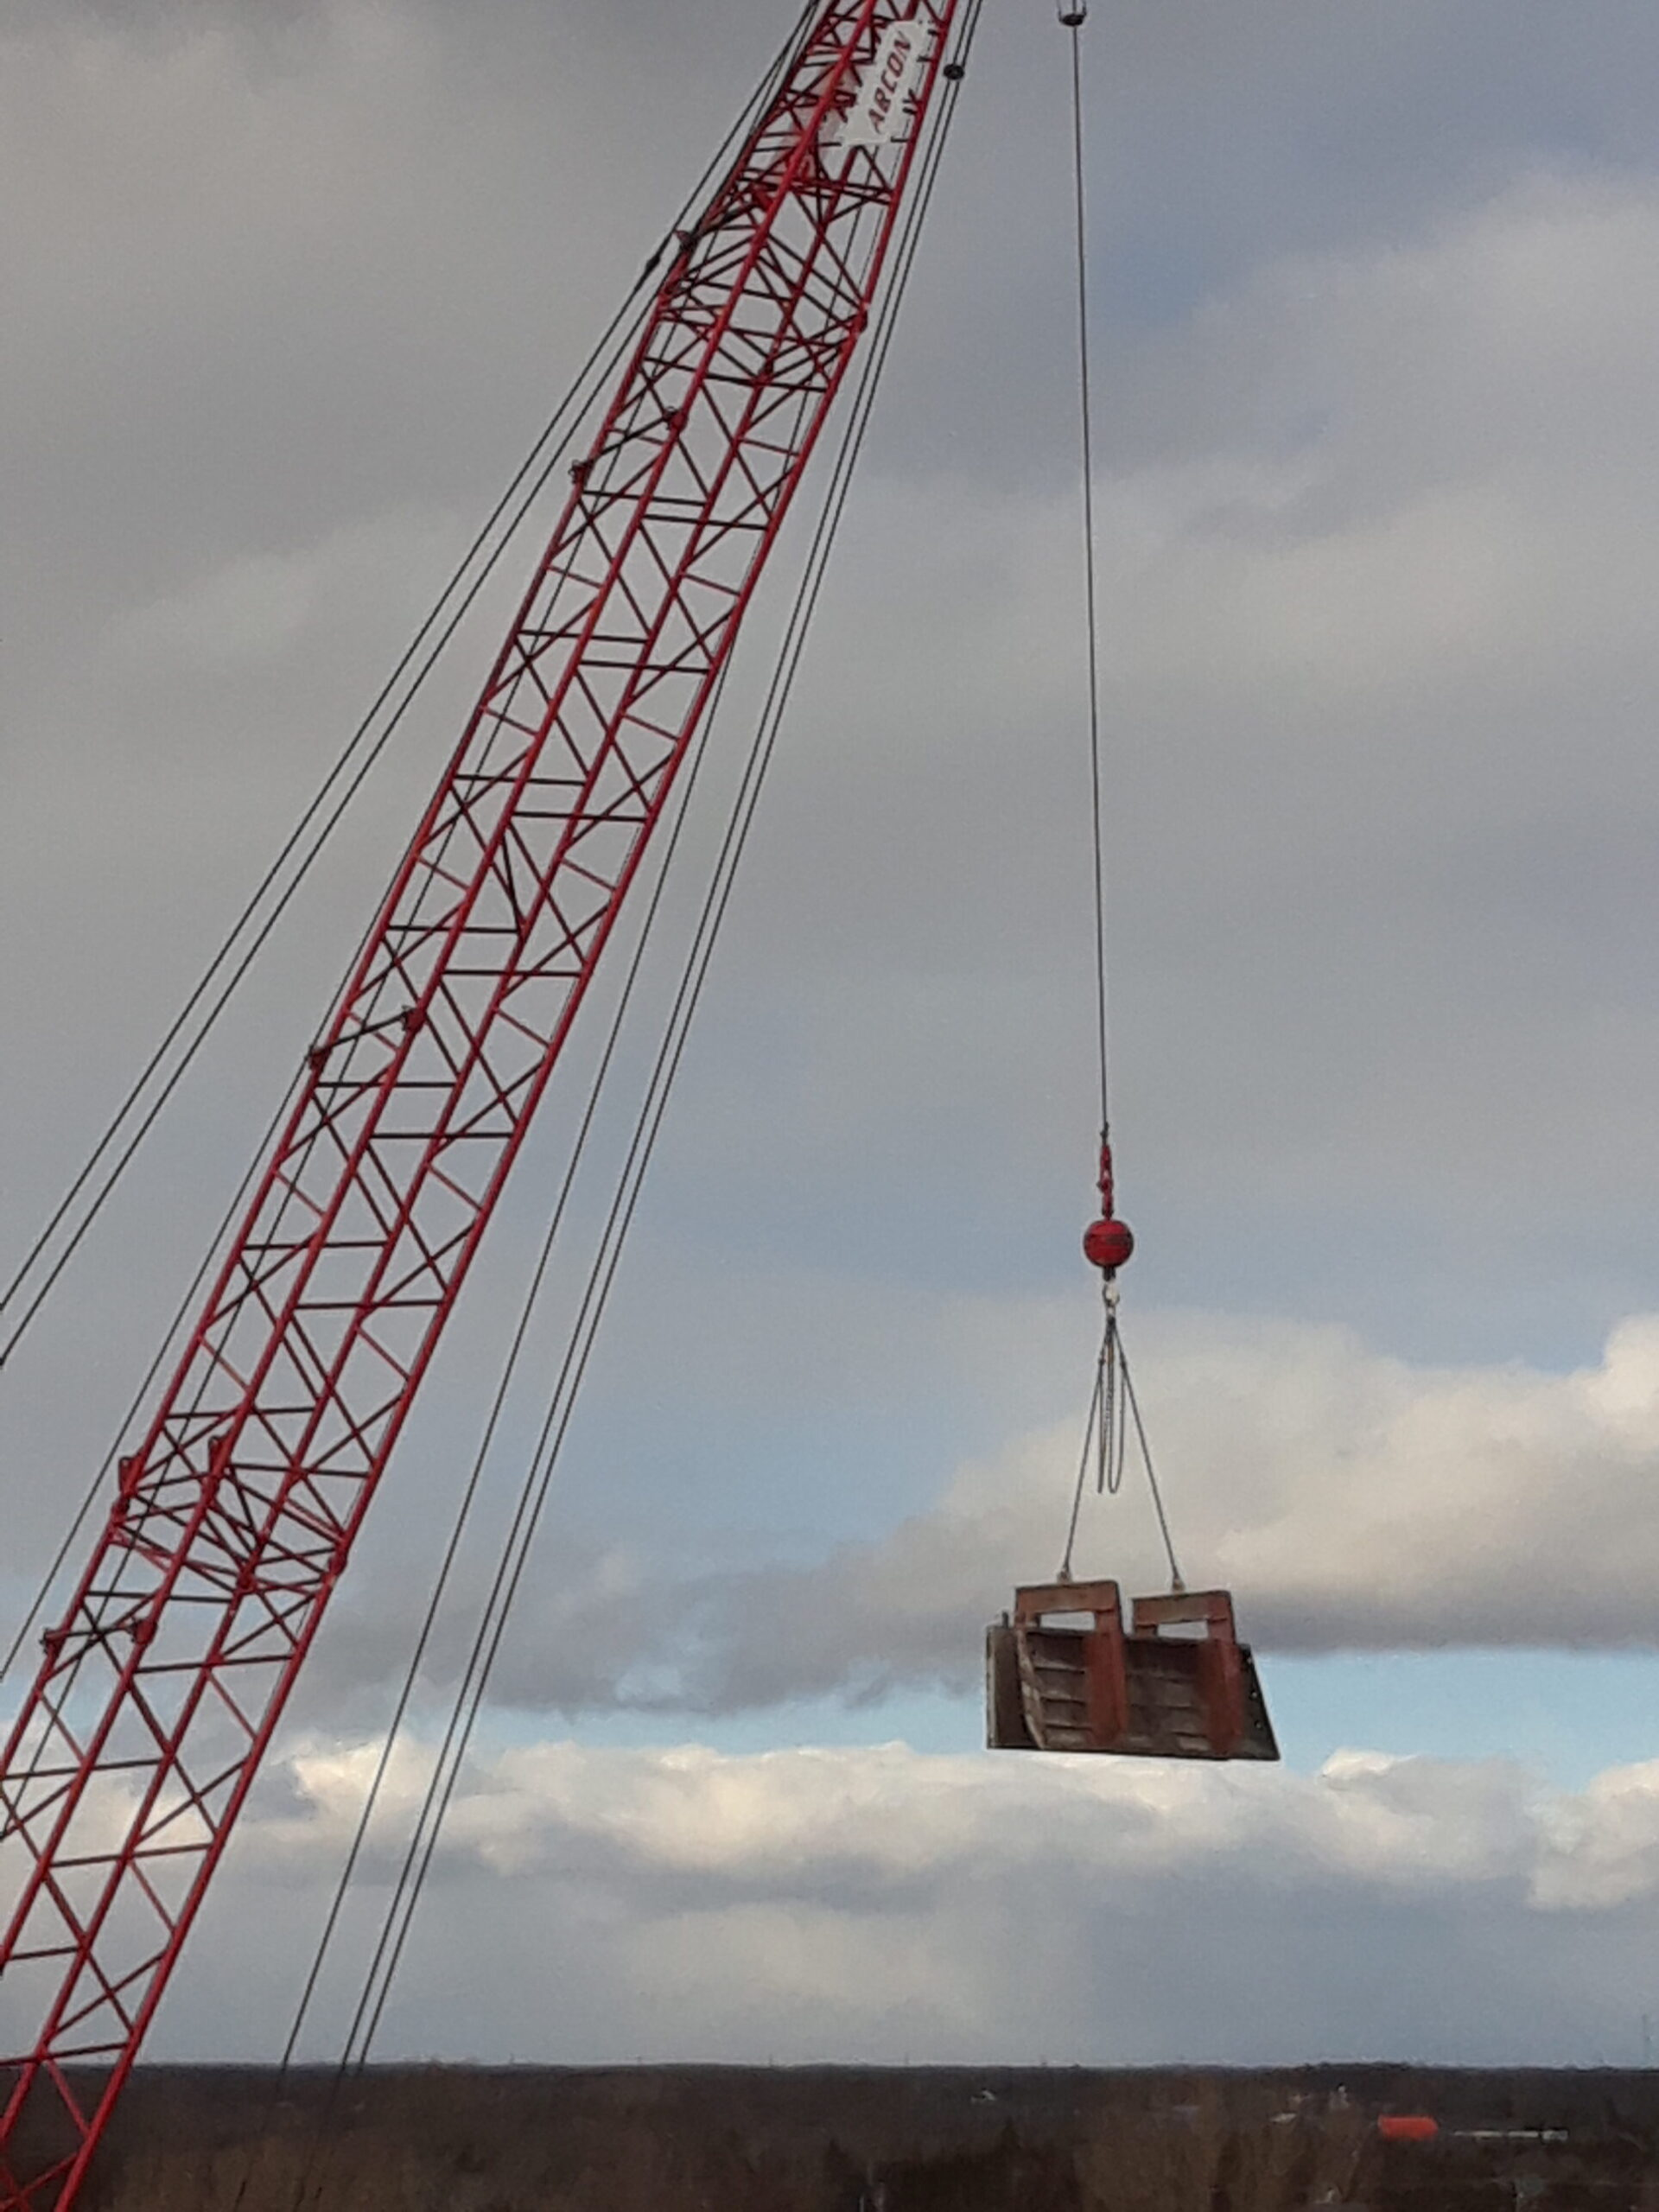 Removing formwork with the crane to the barge